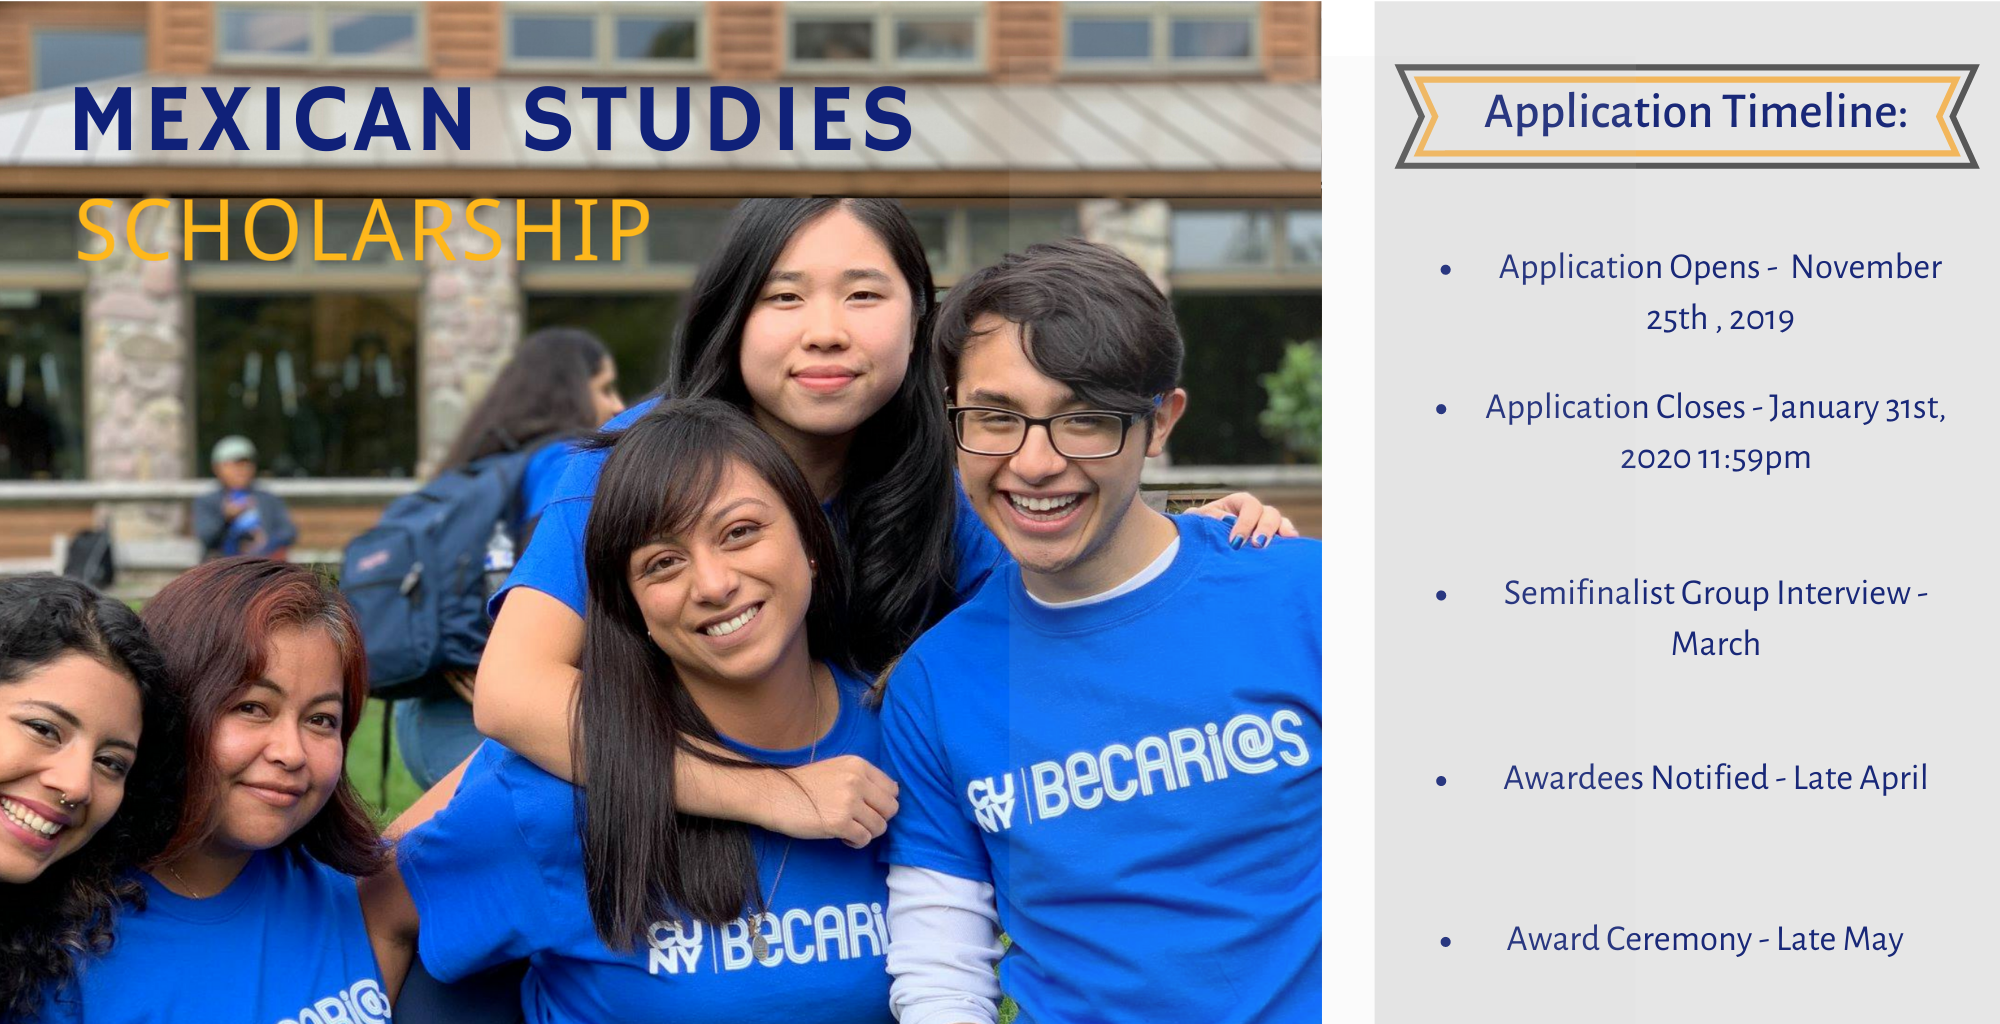 CUNY Mexican Studies Institute: CUNY BECAS Scholarship Program